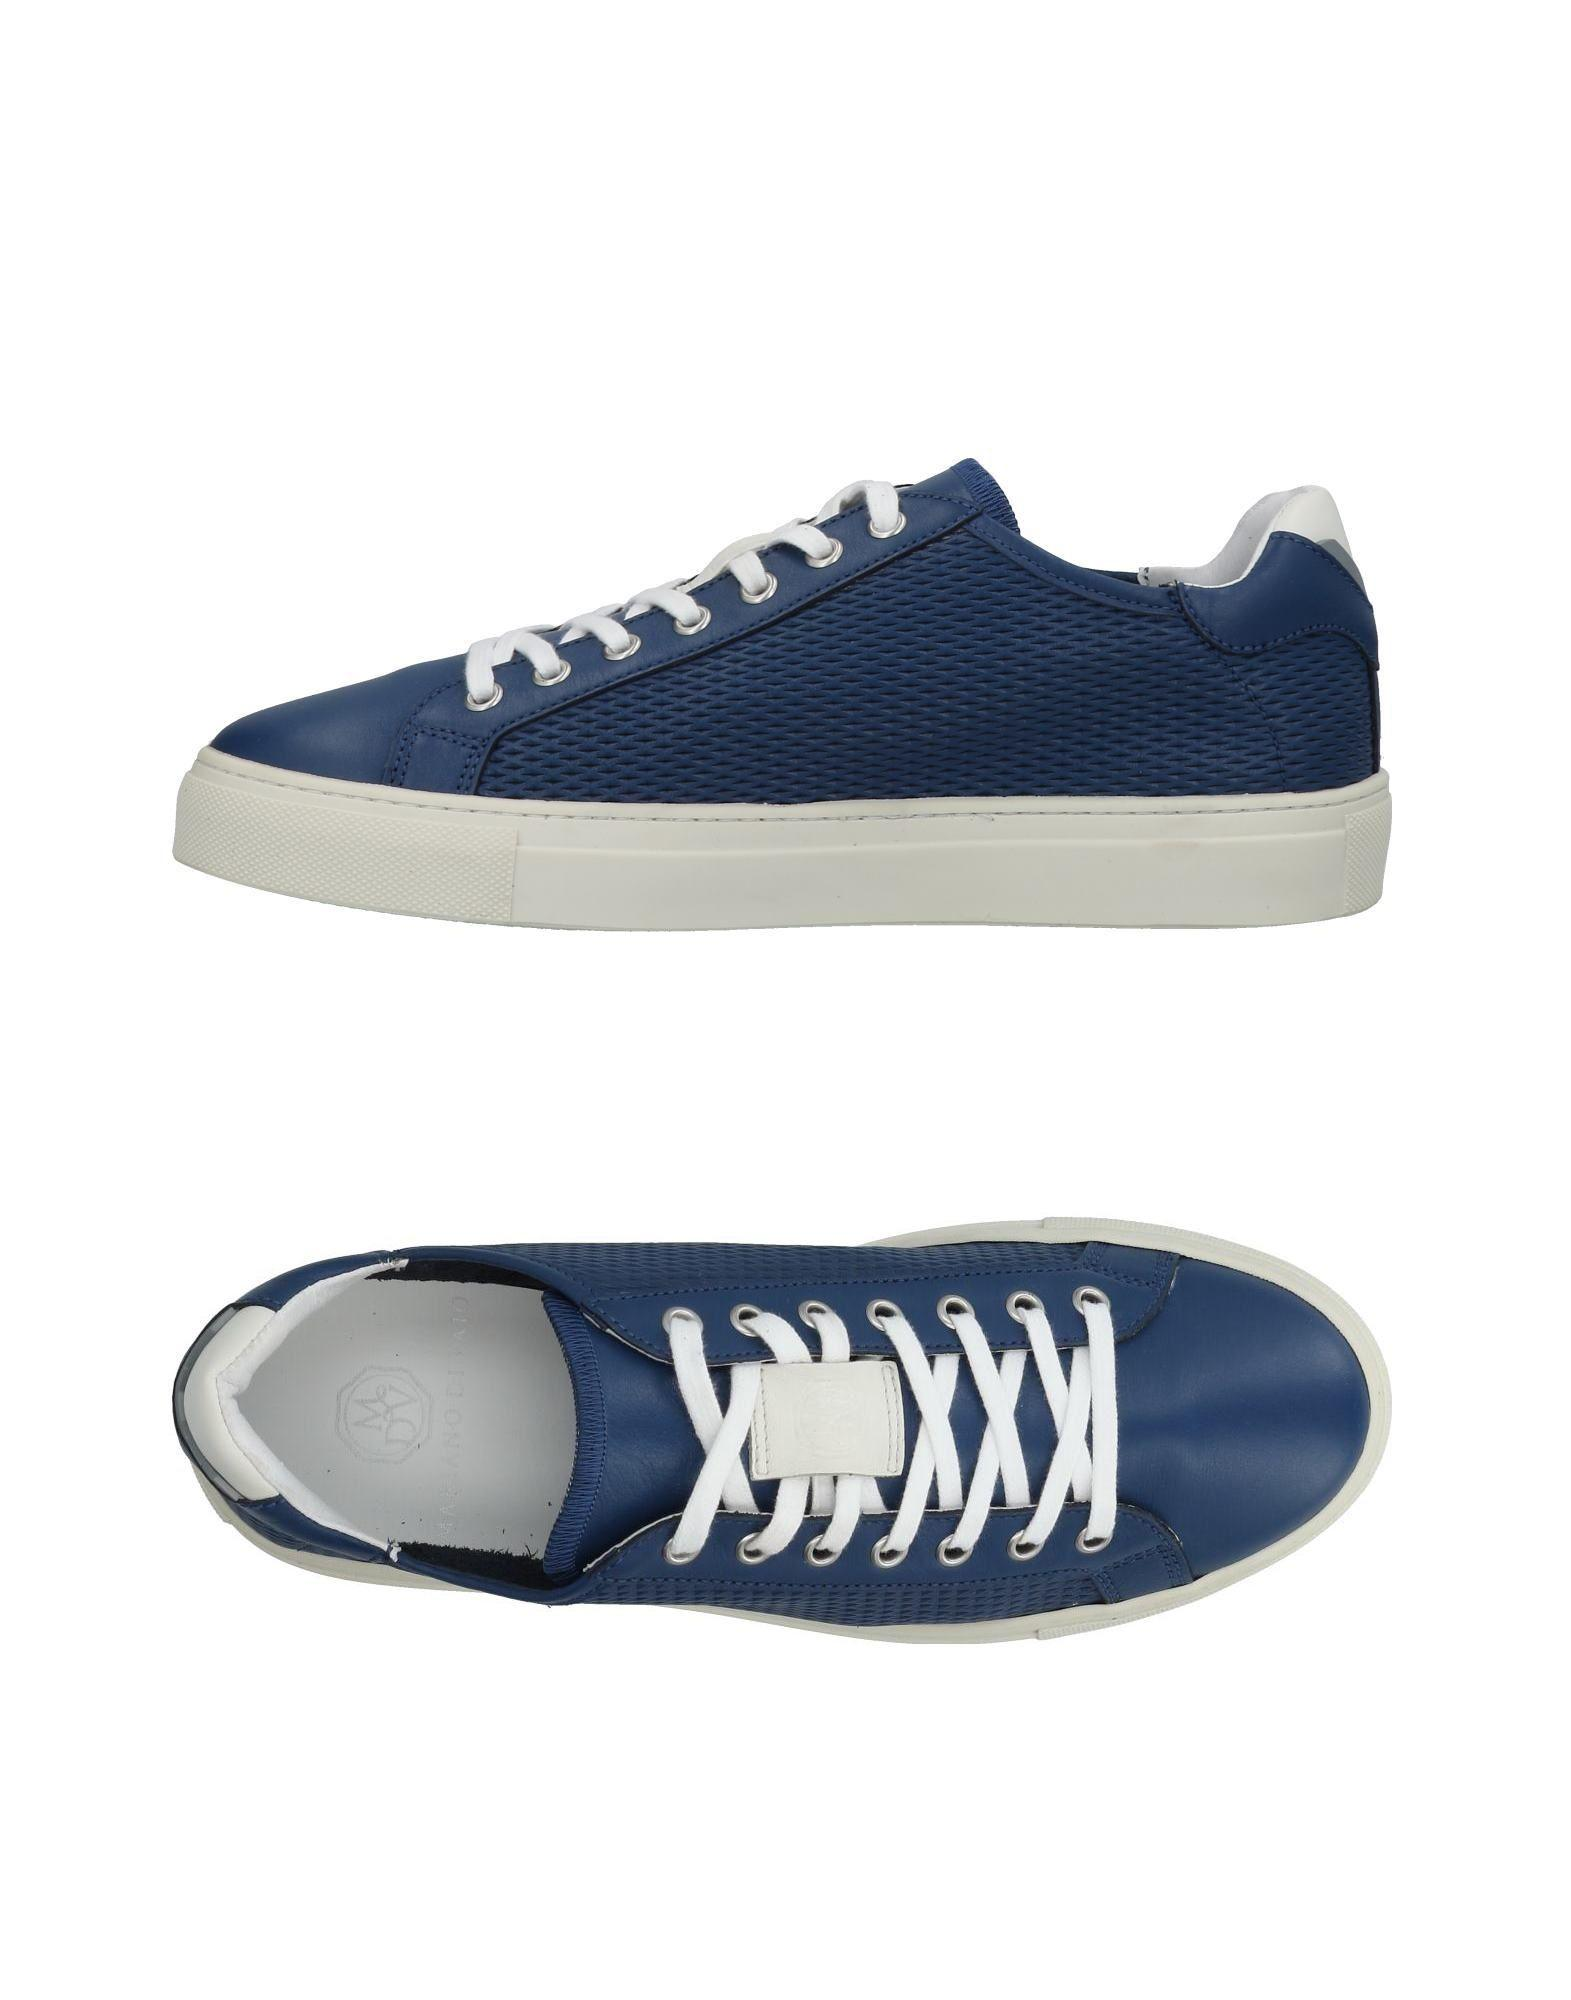 FOOTWEAR - Low-tops & sneakers Mariano Di Vaio Sale Low Cost RYbxSfKjy